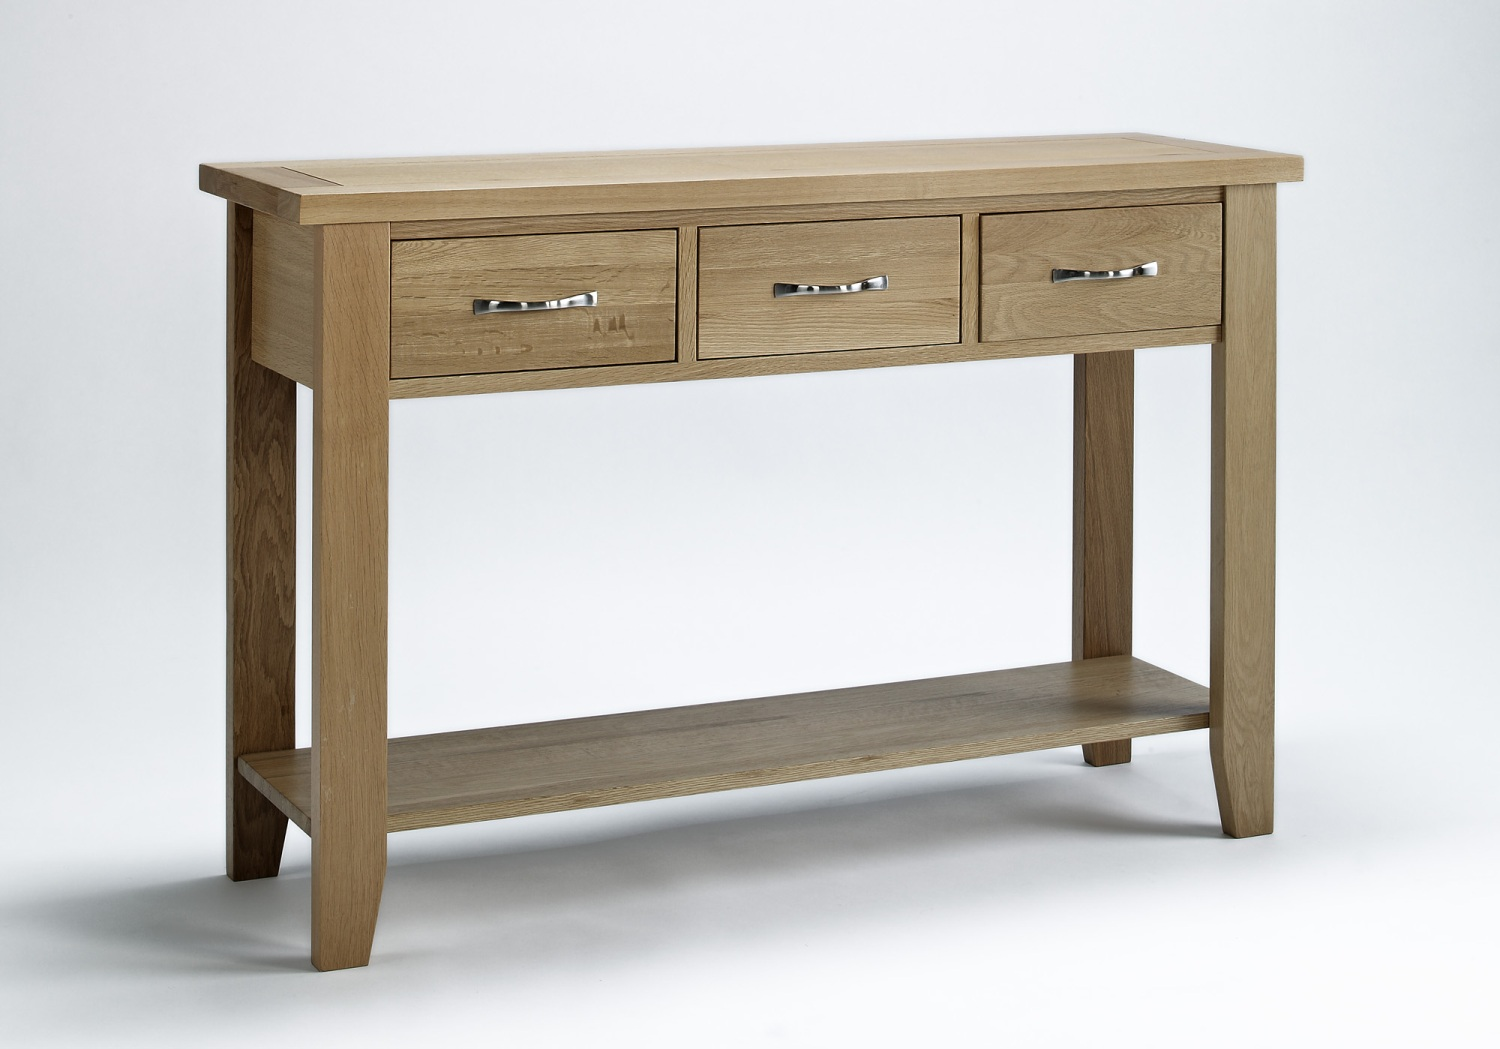 compton solid oak furniture large hallway console hall